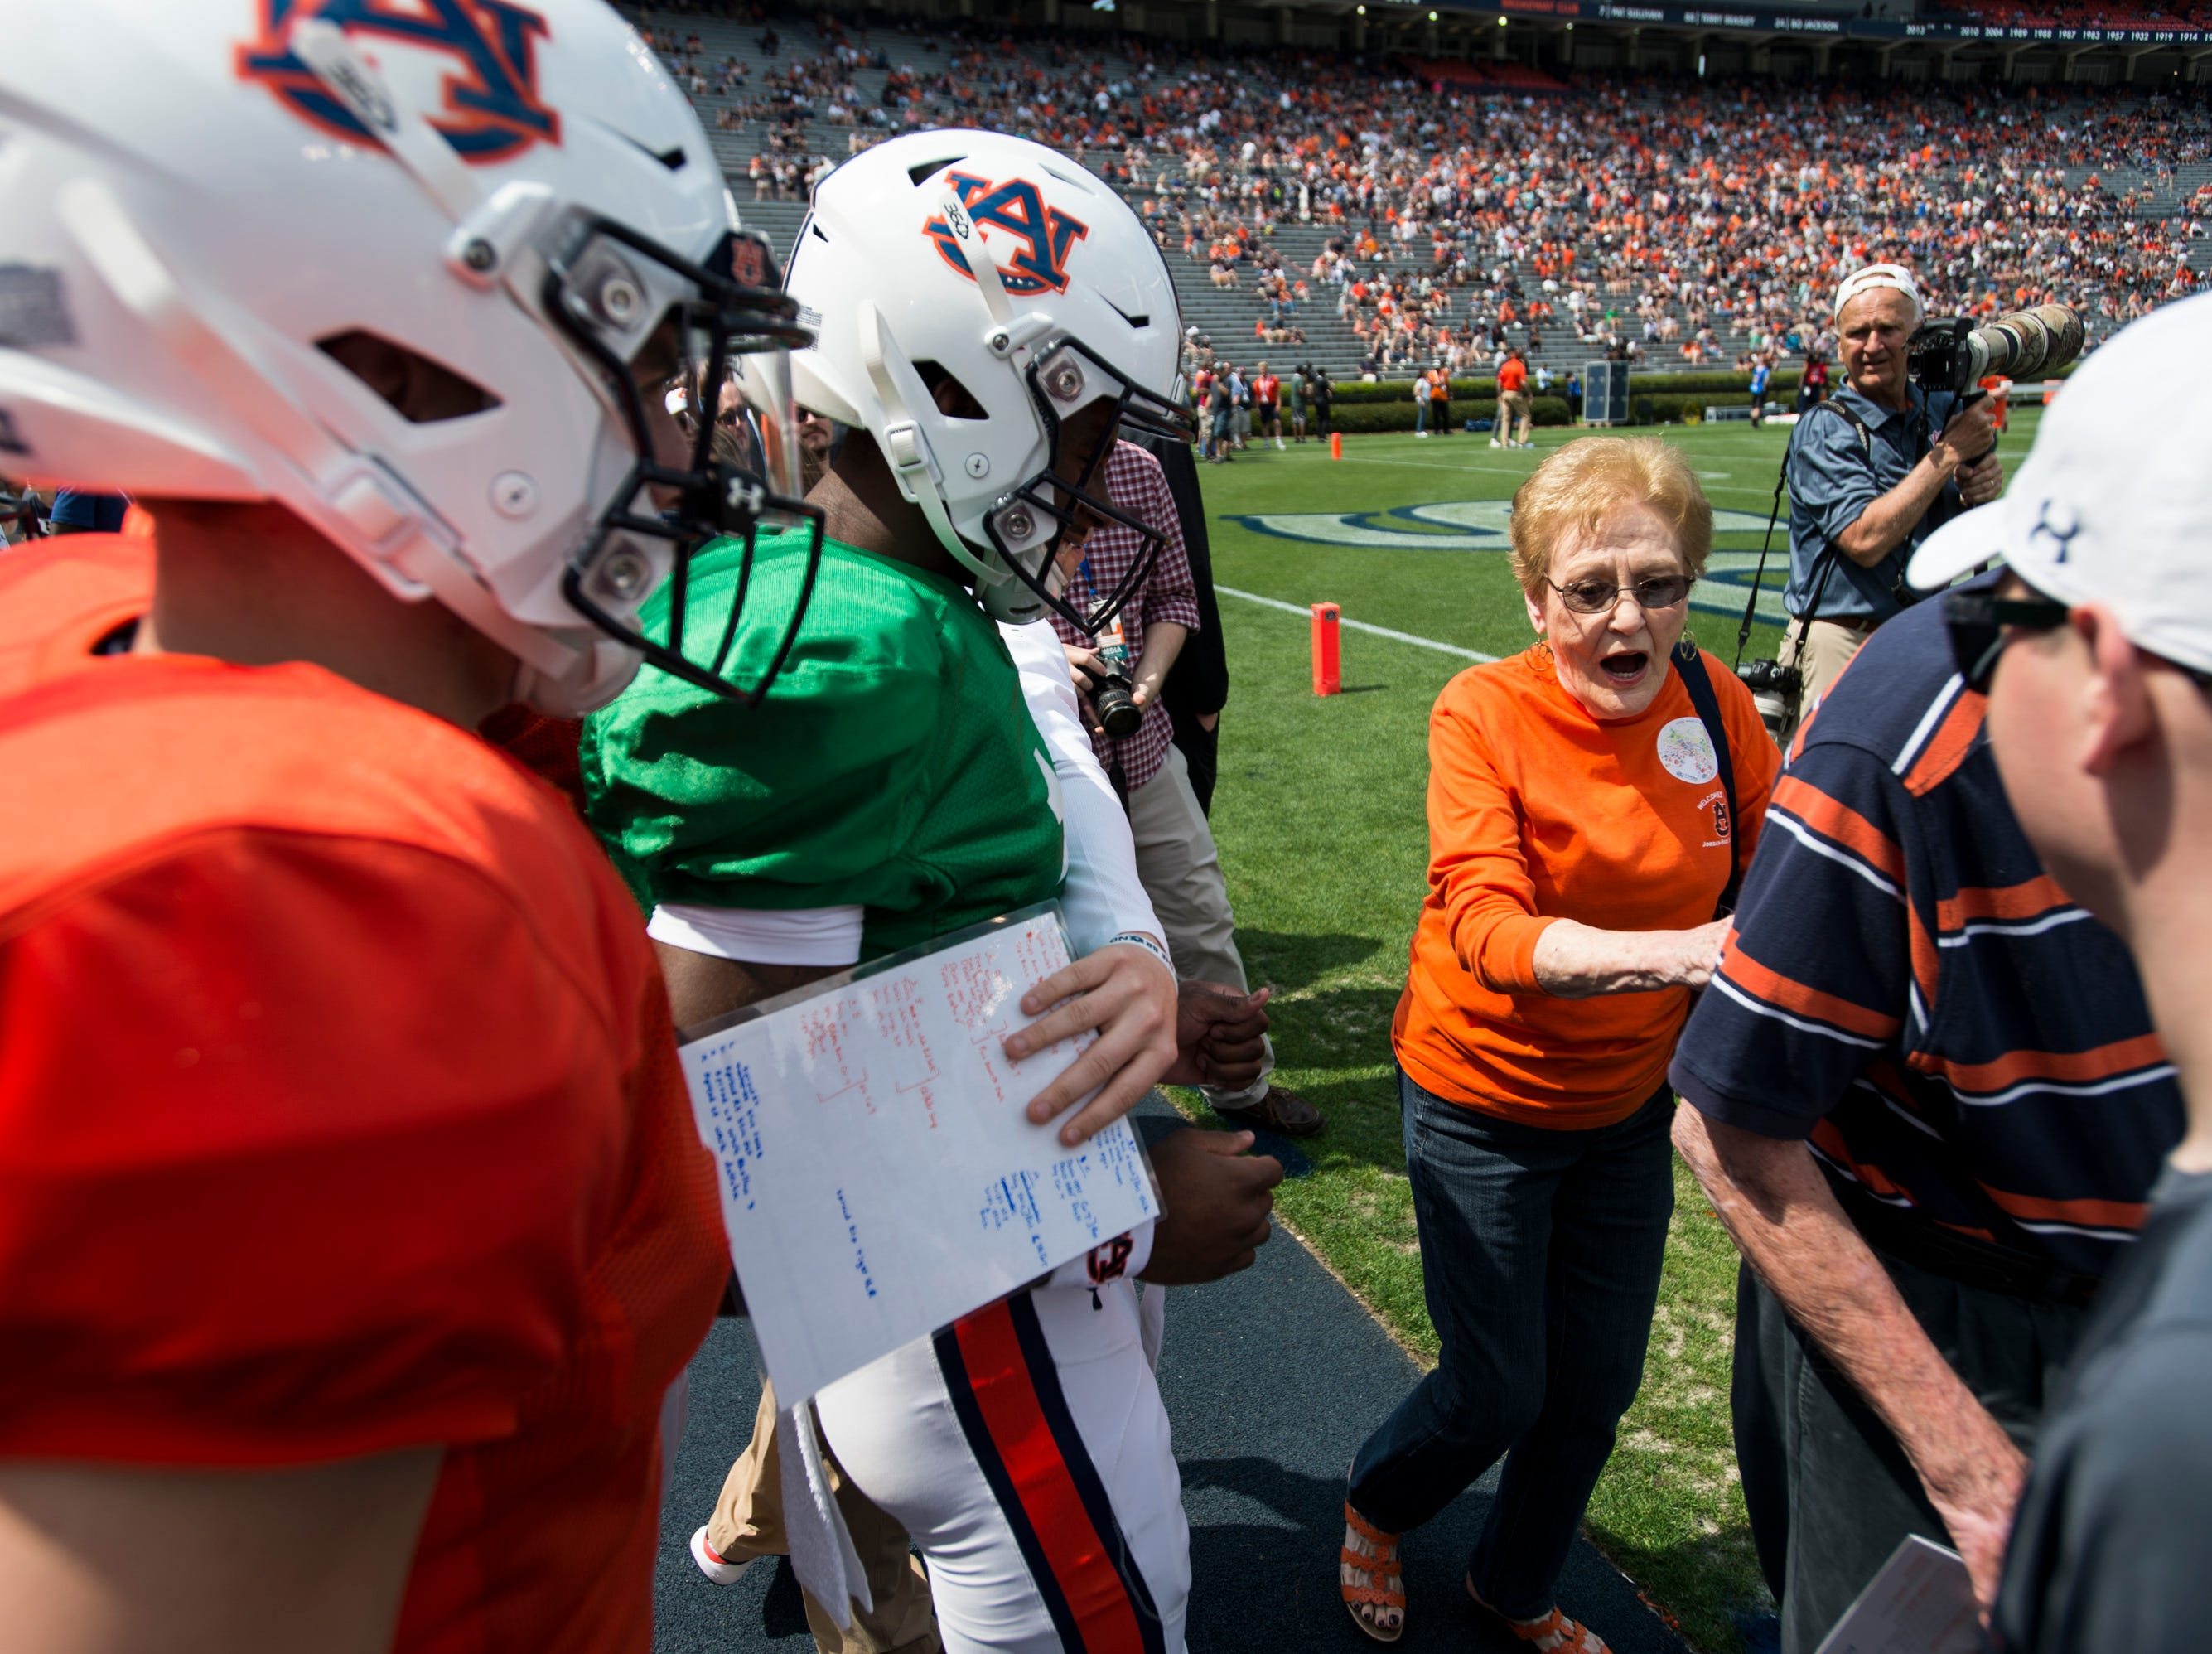 Auburn quarterbacks are halted before they run over fans during the A-Day spring practice gameat Jordan-Hare Stadium in Auburn, Ala., on Saturday, April 13, 2019.